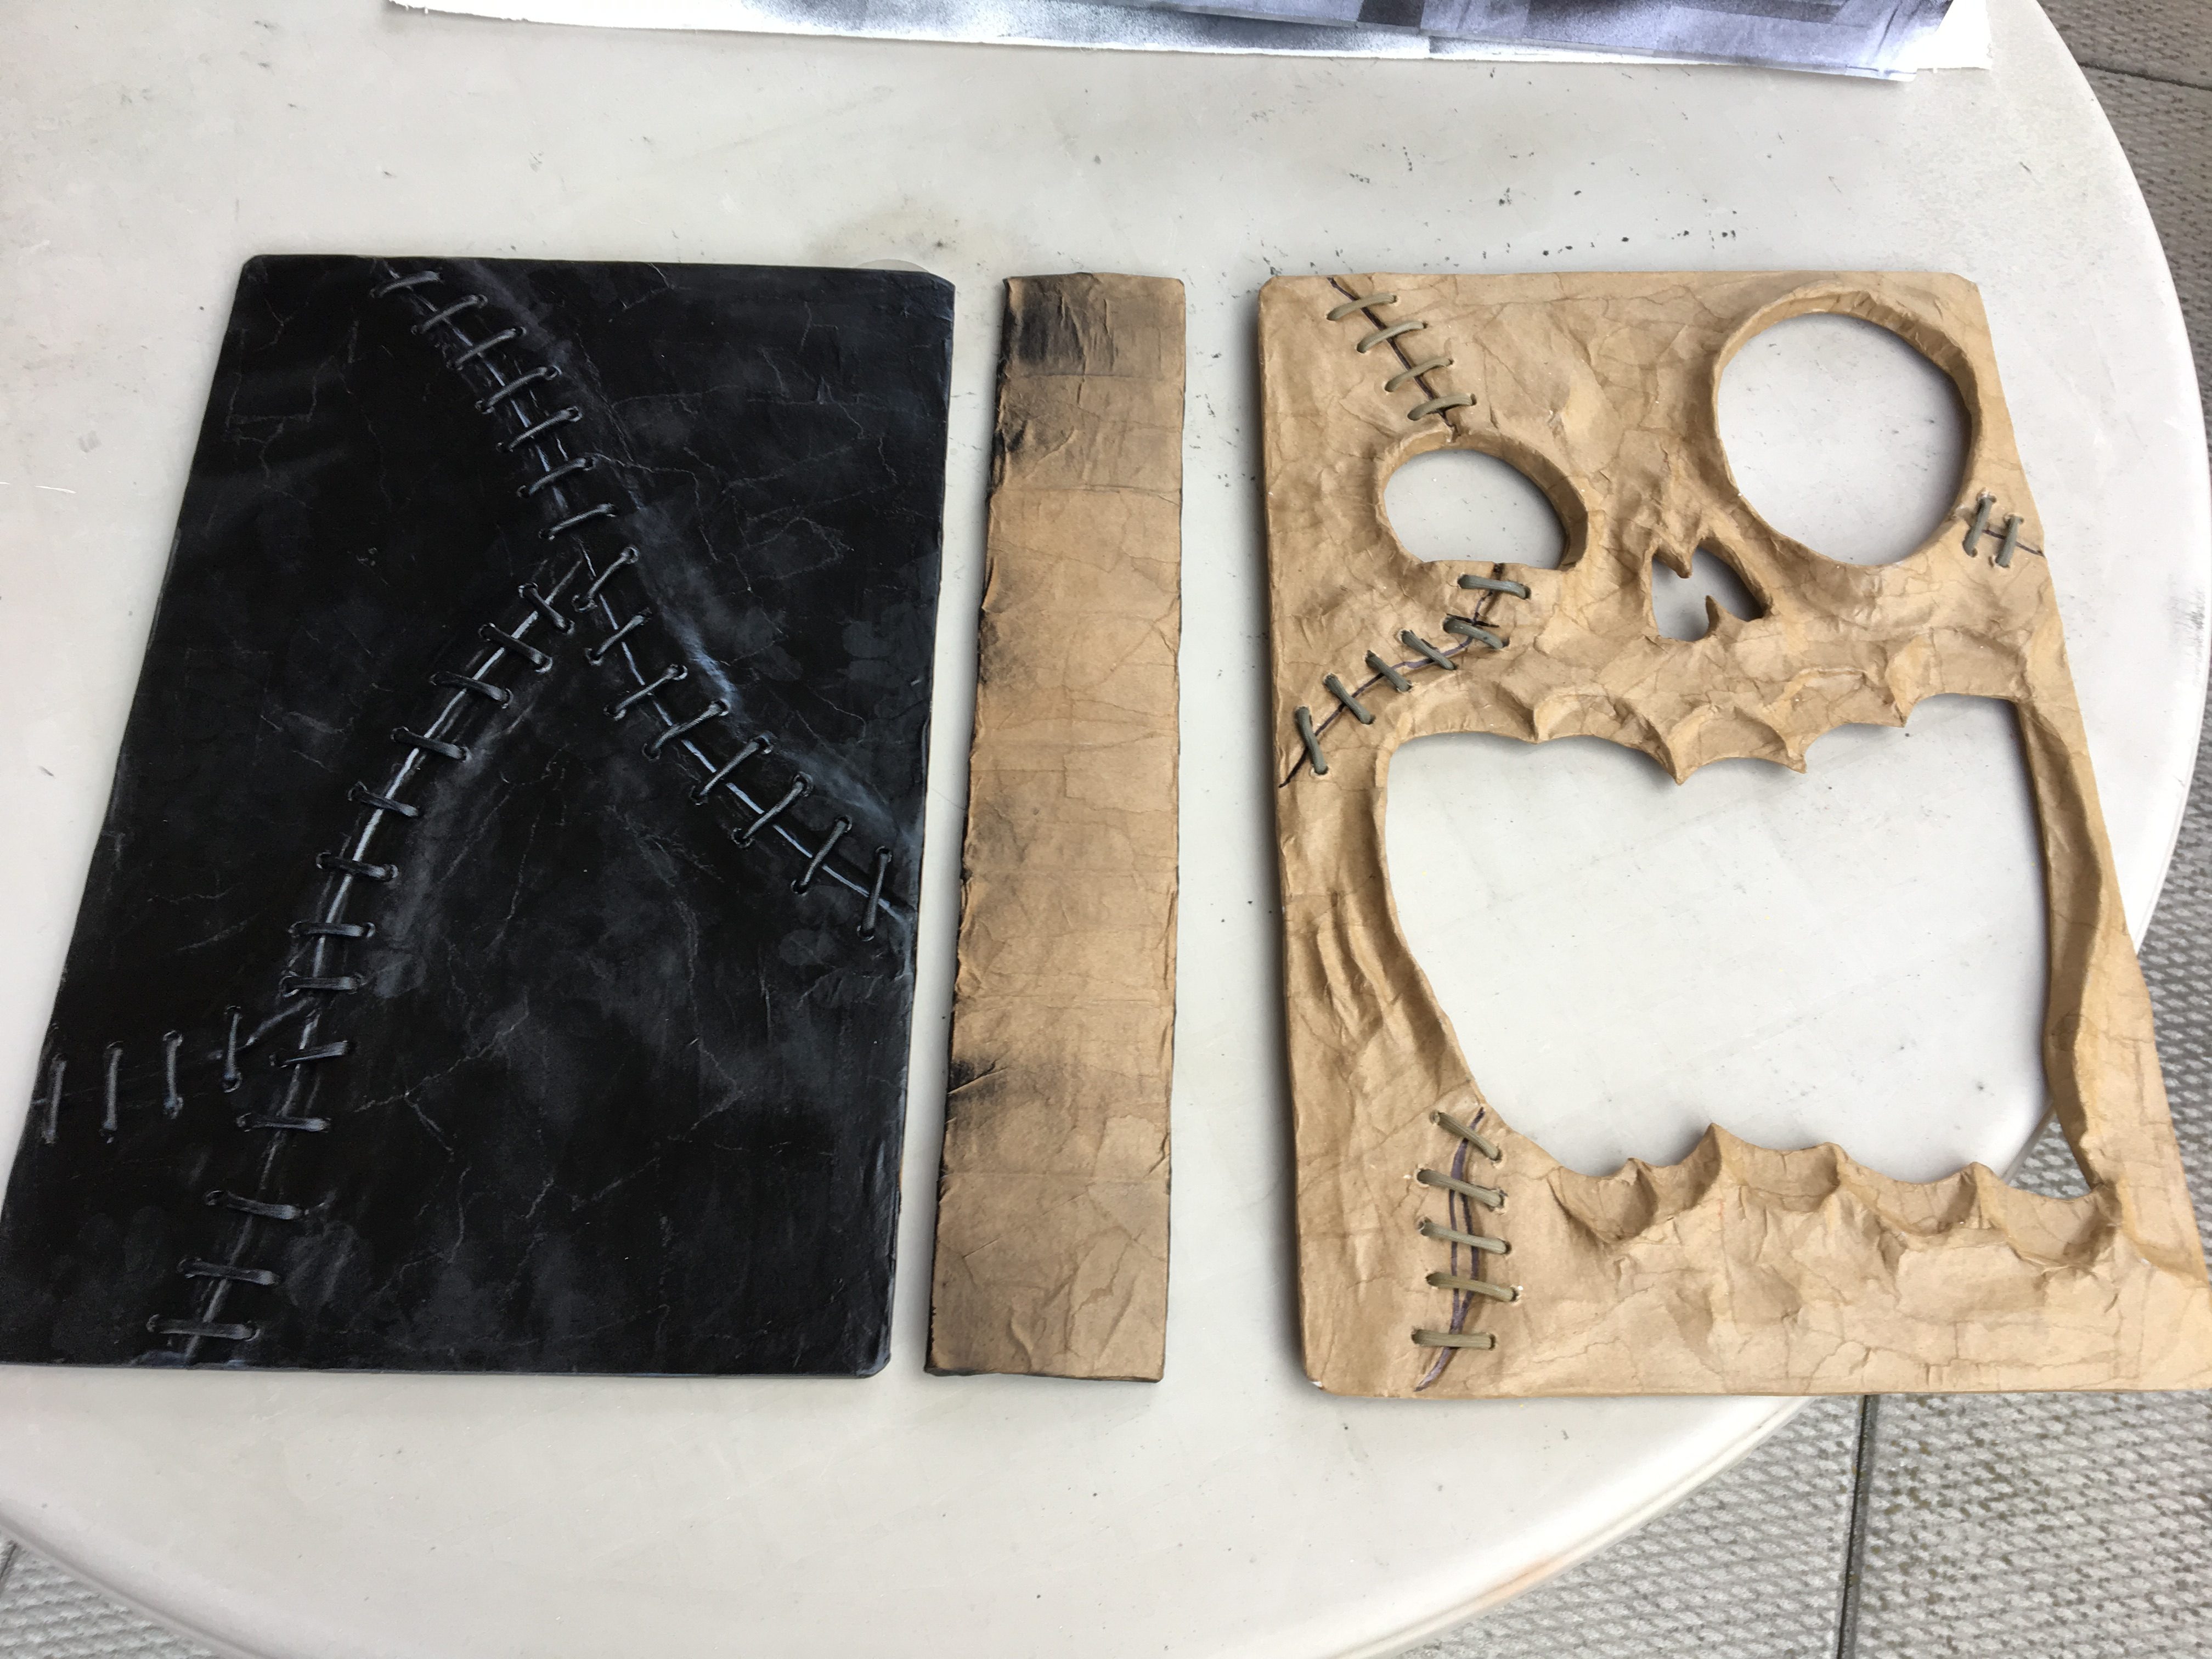 Haunted book sculpture - building the spine